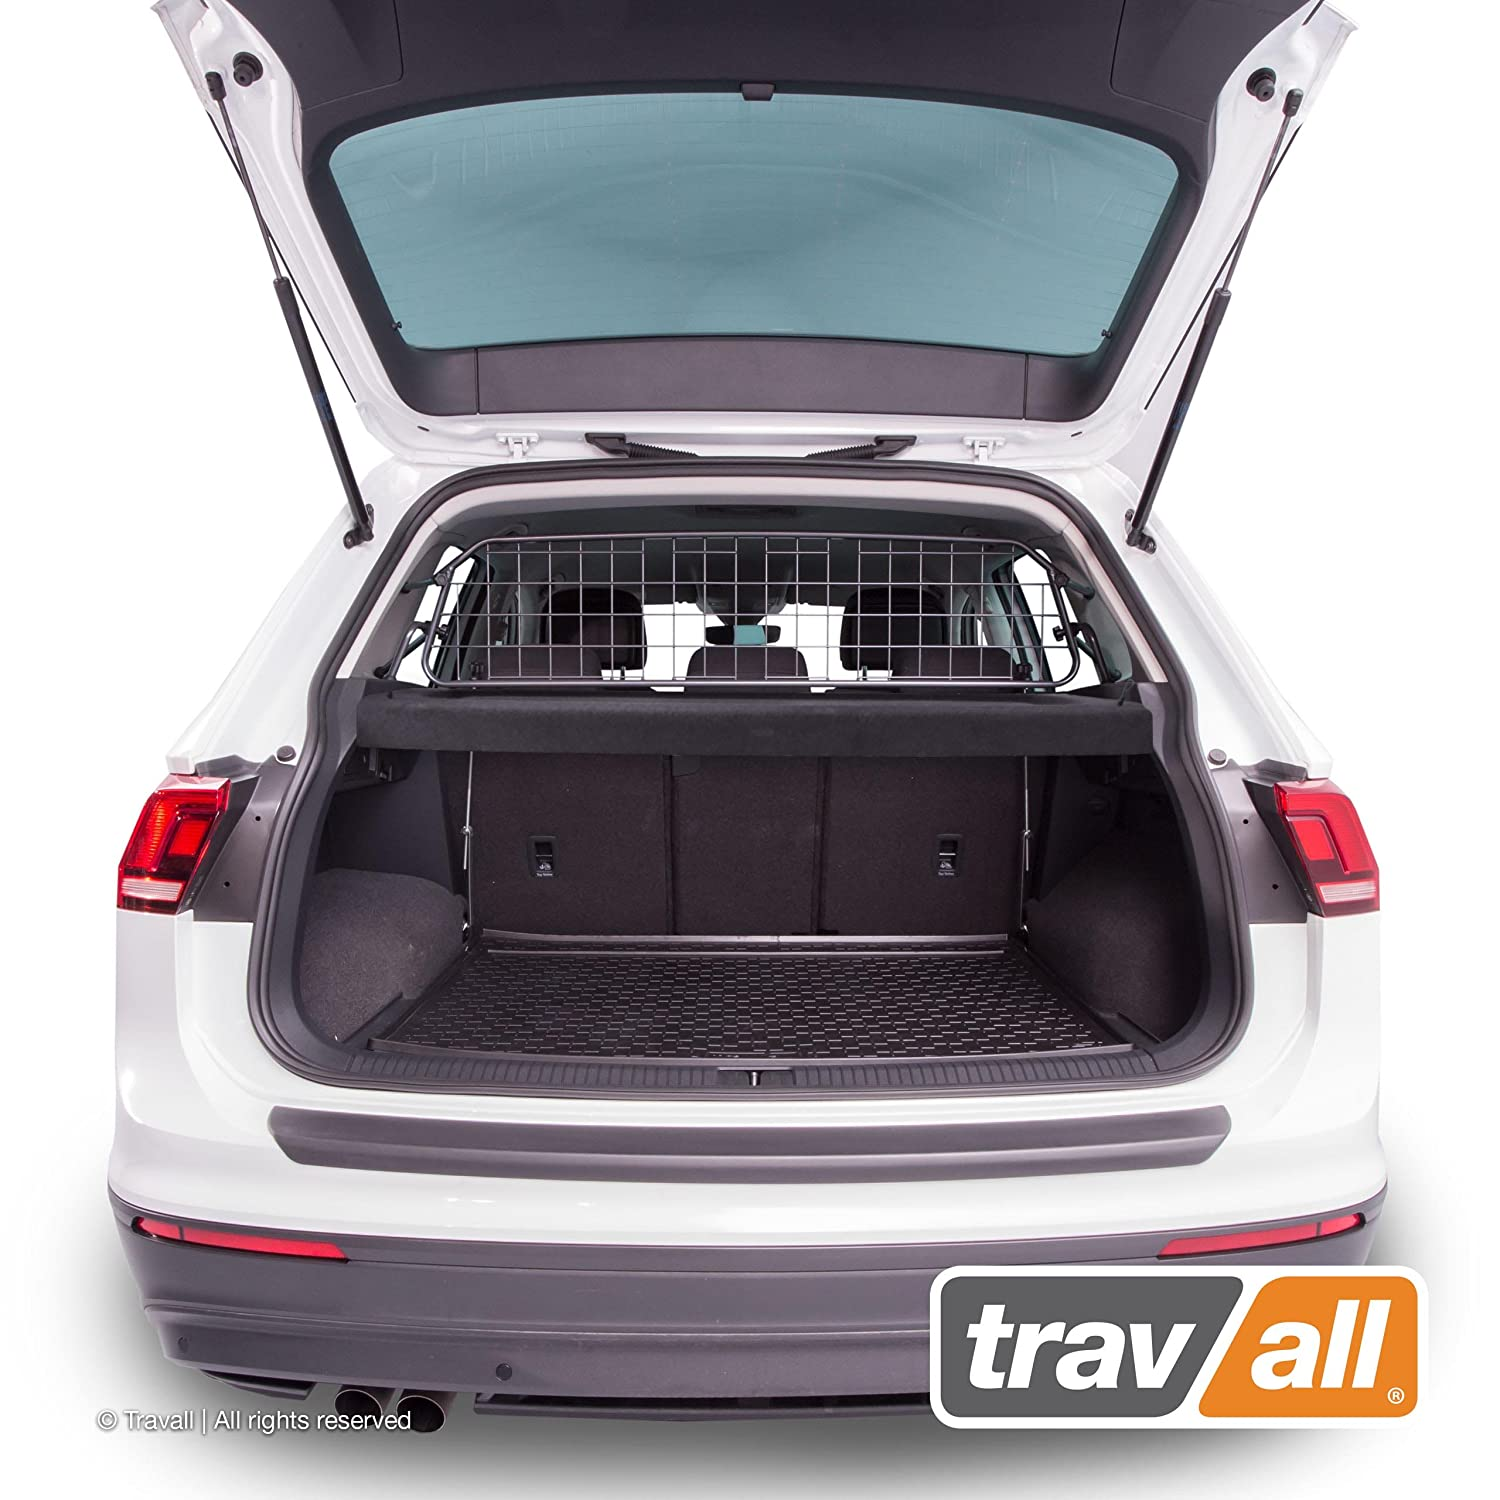 Travall Guard TDG1486 Vehicle-Specific Dog Guard